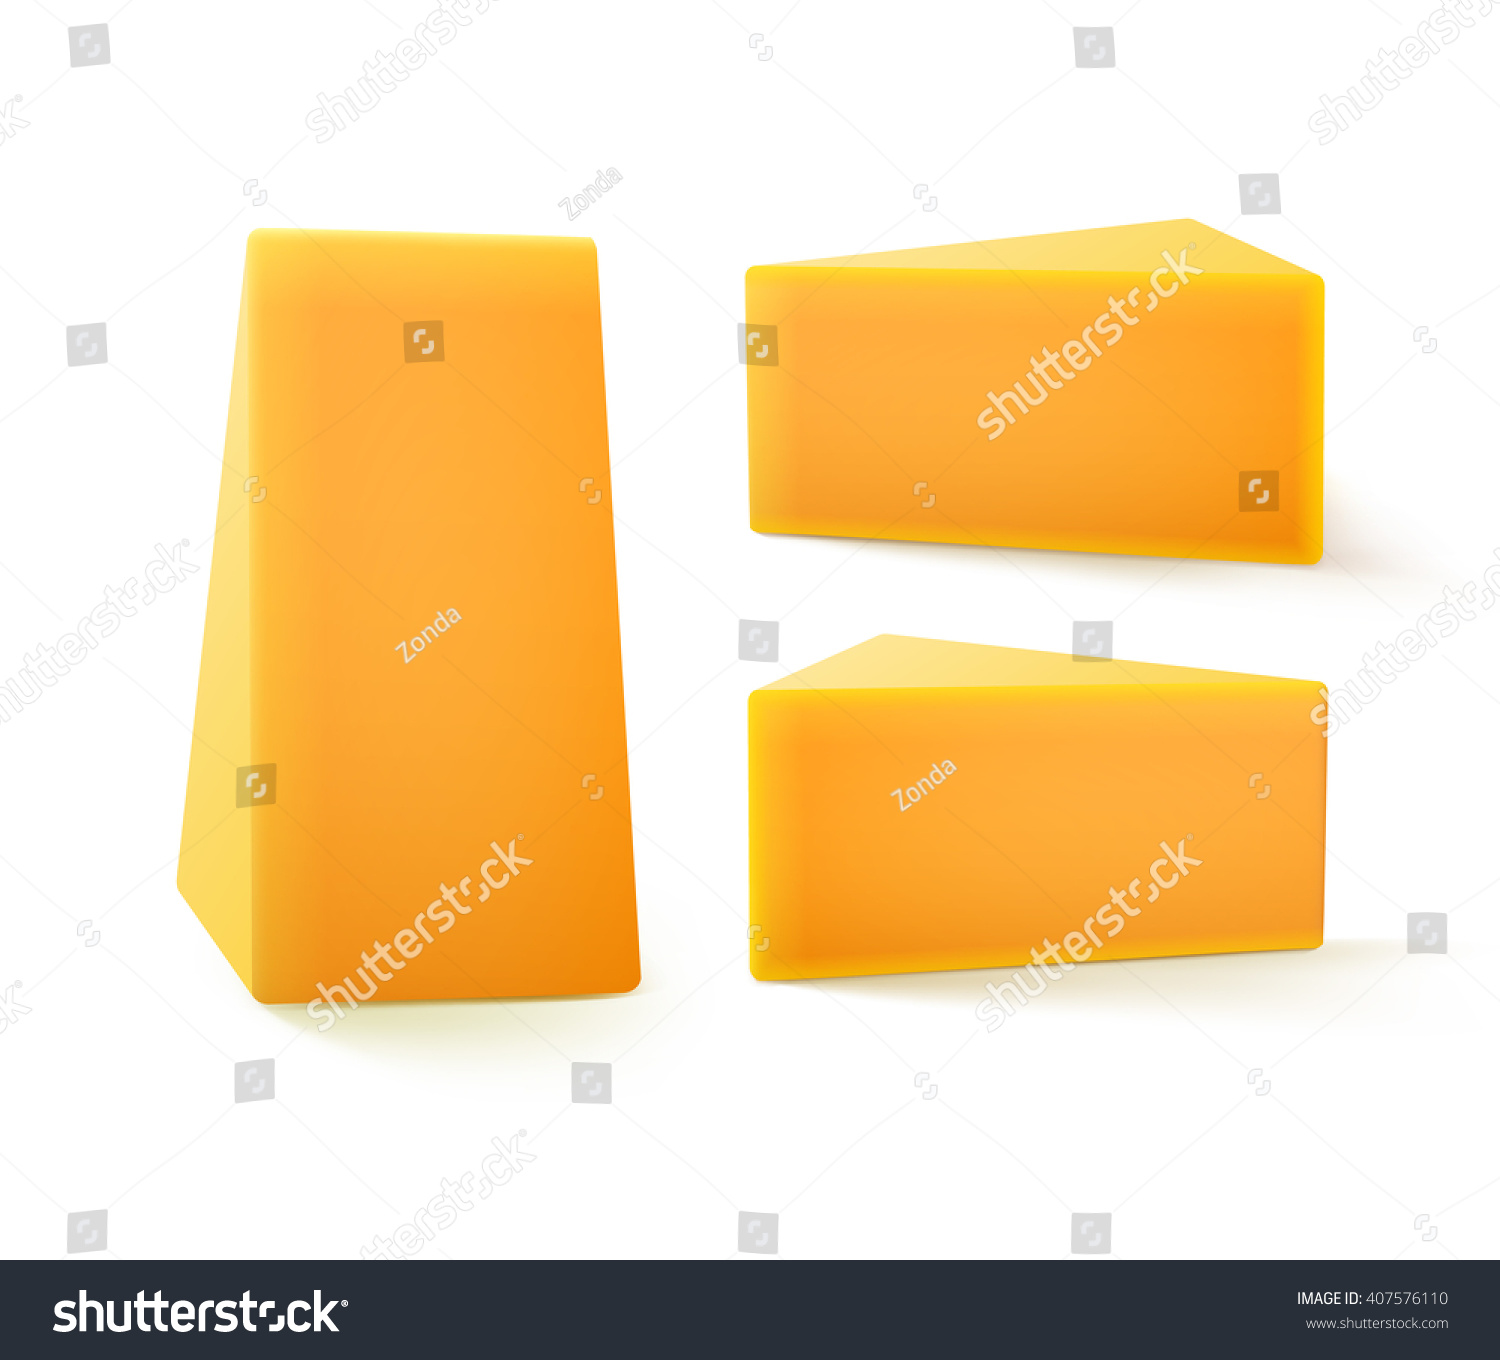 Vector Set Triangular Pieces Cheddar Cheese 407576110 together with Jobs moreover Jobs In Classroom additionally Free Clipart 29838 as well Rattlesnake Cartoon Black White Outline 914. on eraser snack